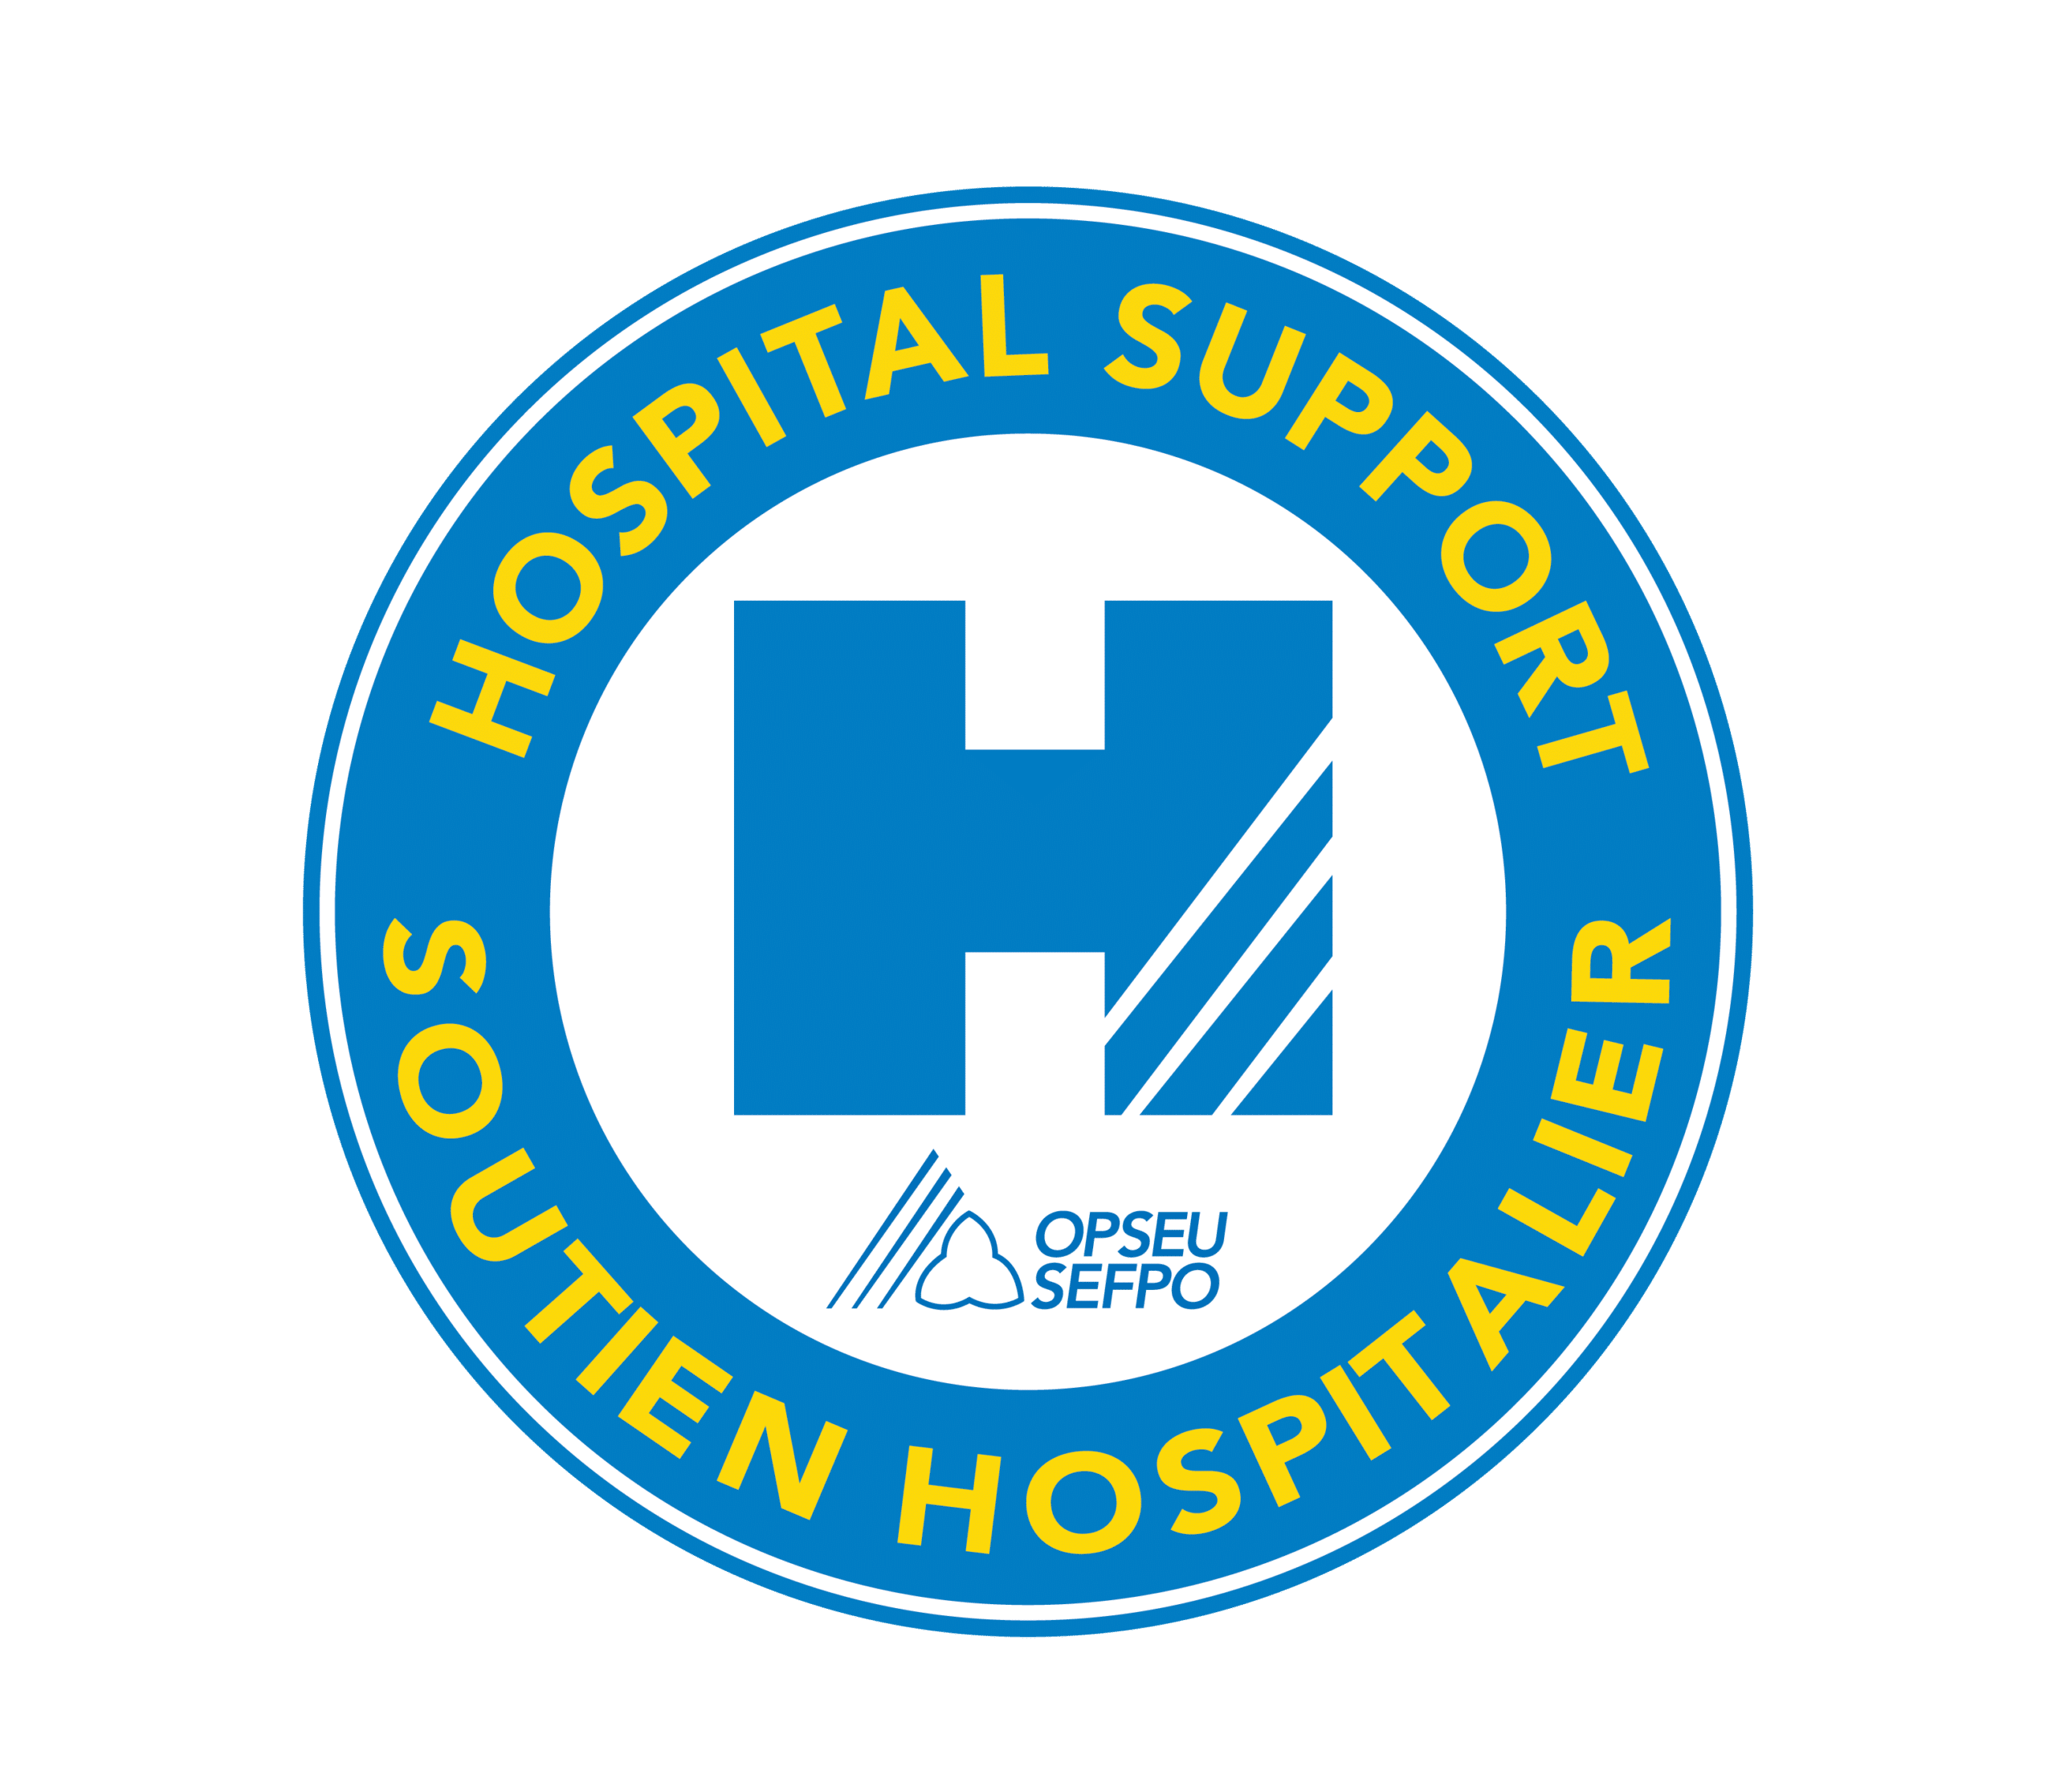 Circular logo with Hospital Support around the top, Soutien Hospitalier around the bottom, a large H and the OPSEU SEFPO logo in the middle